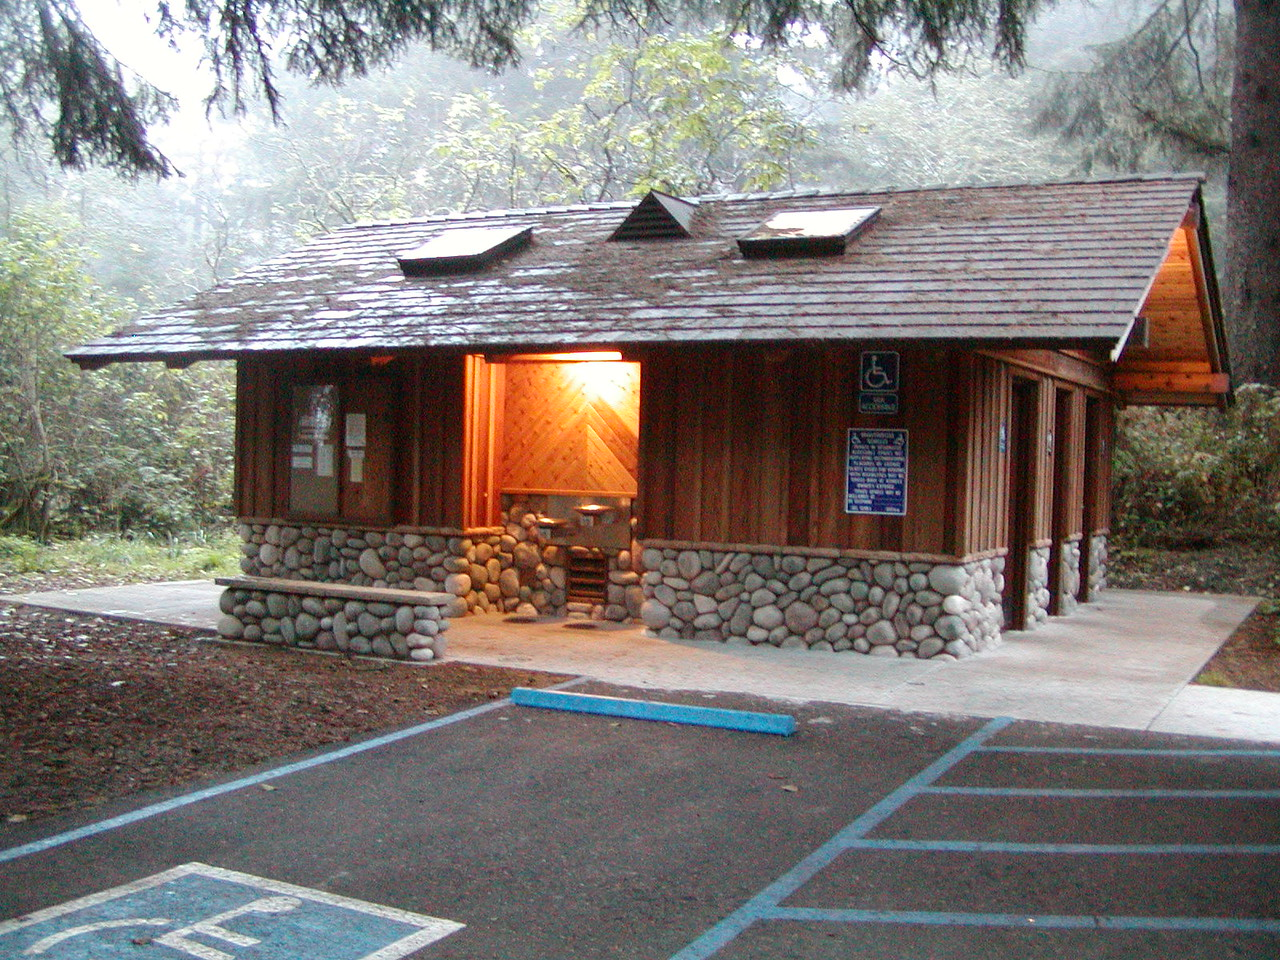 The excellent restroom and shower building at the Lookout group campsite